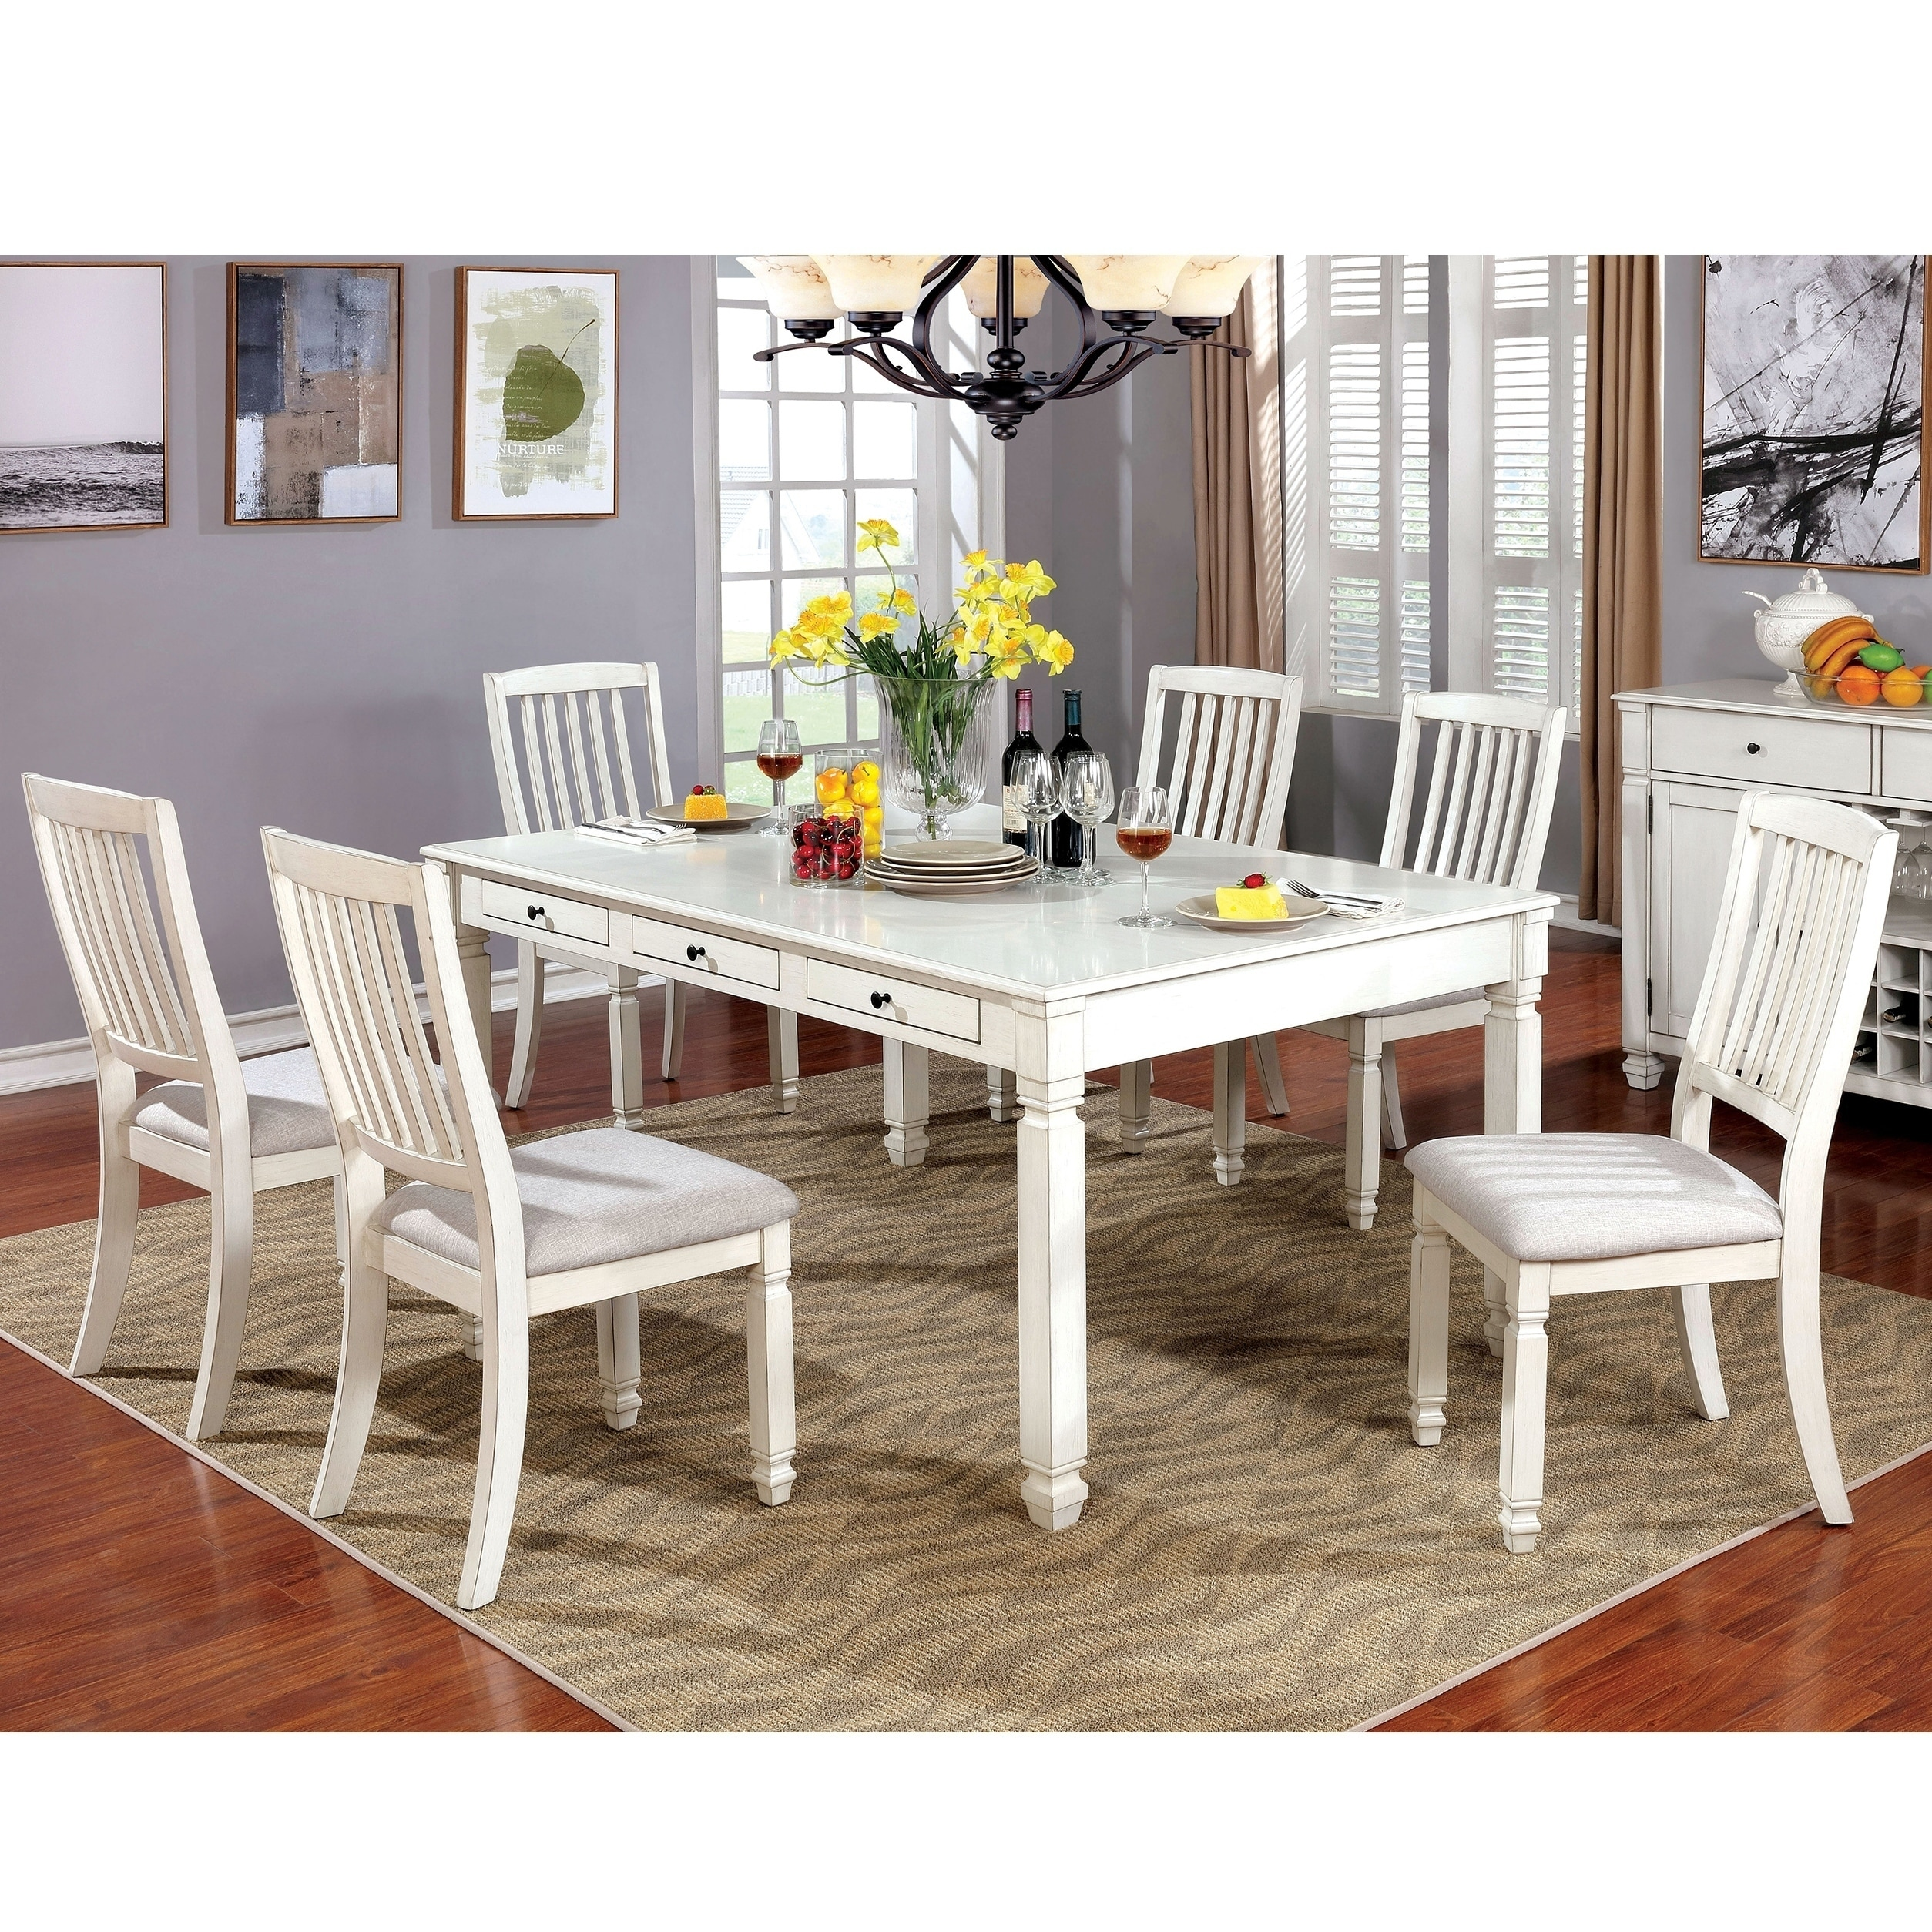 Shop Furniture Of America Lese Transitional White 7 Piece Dining